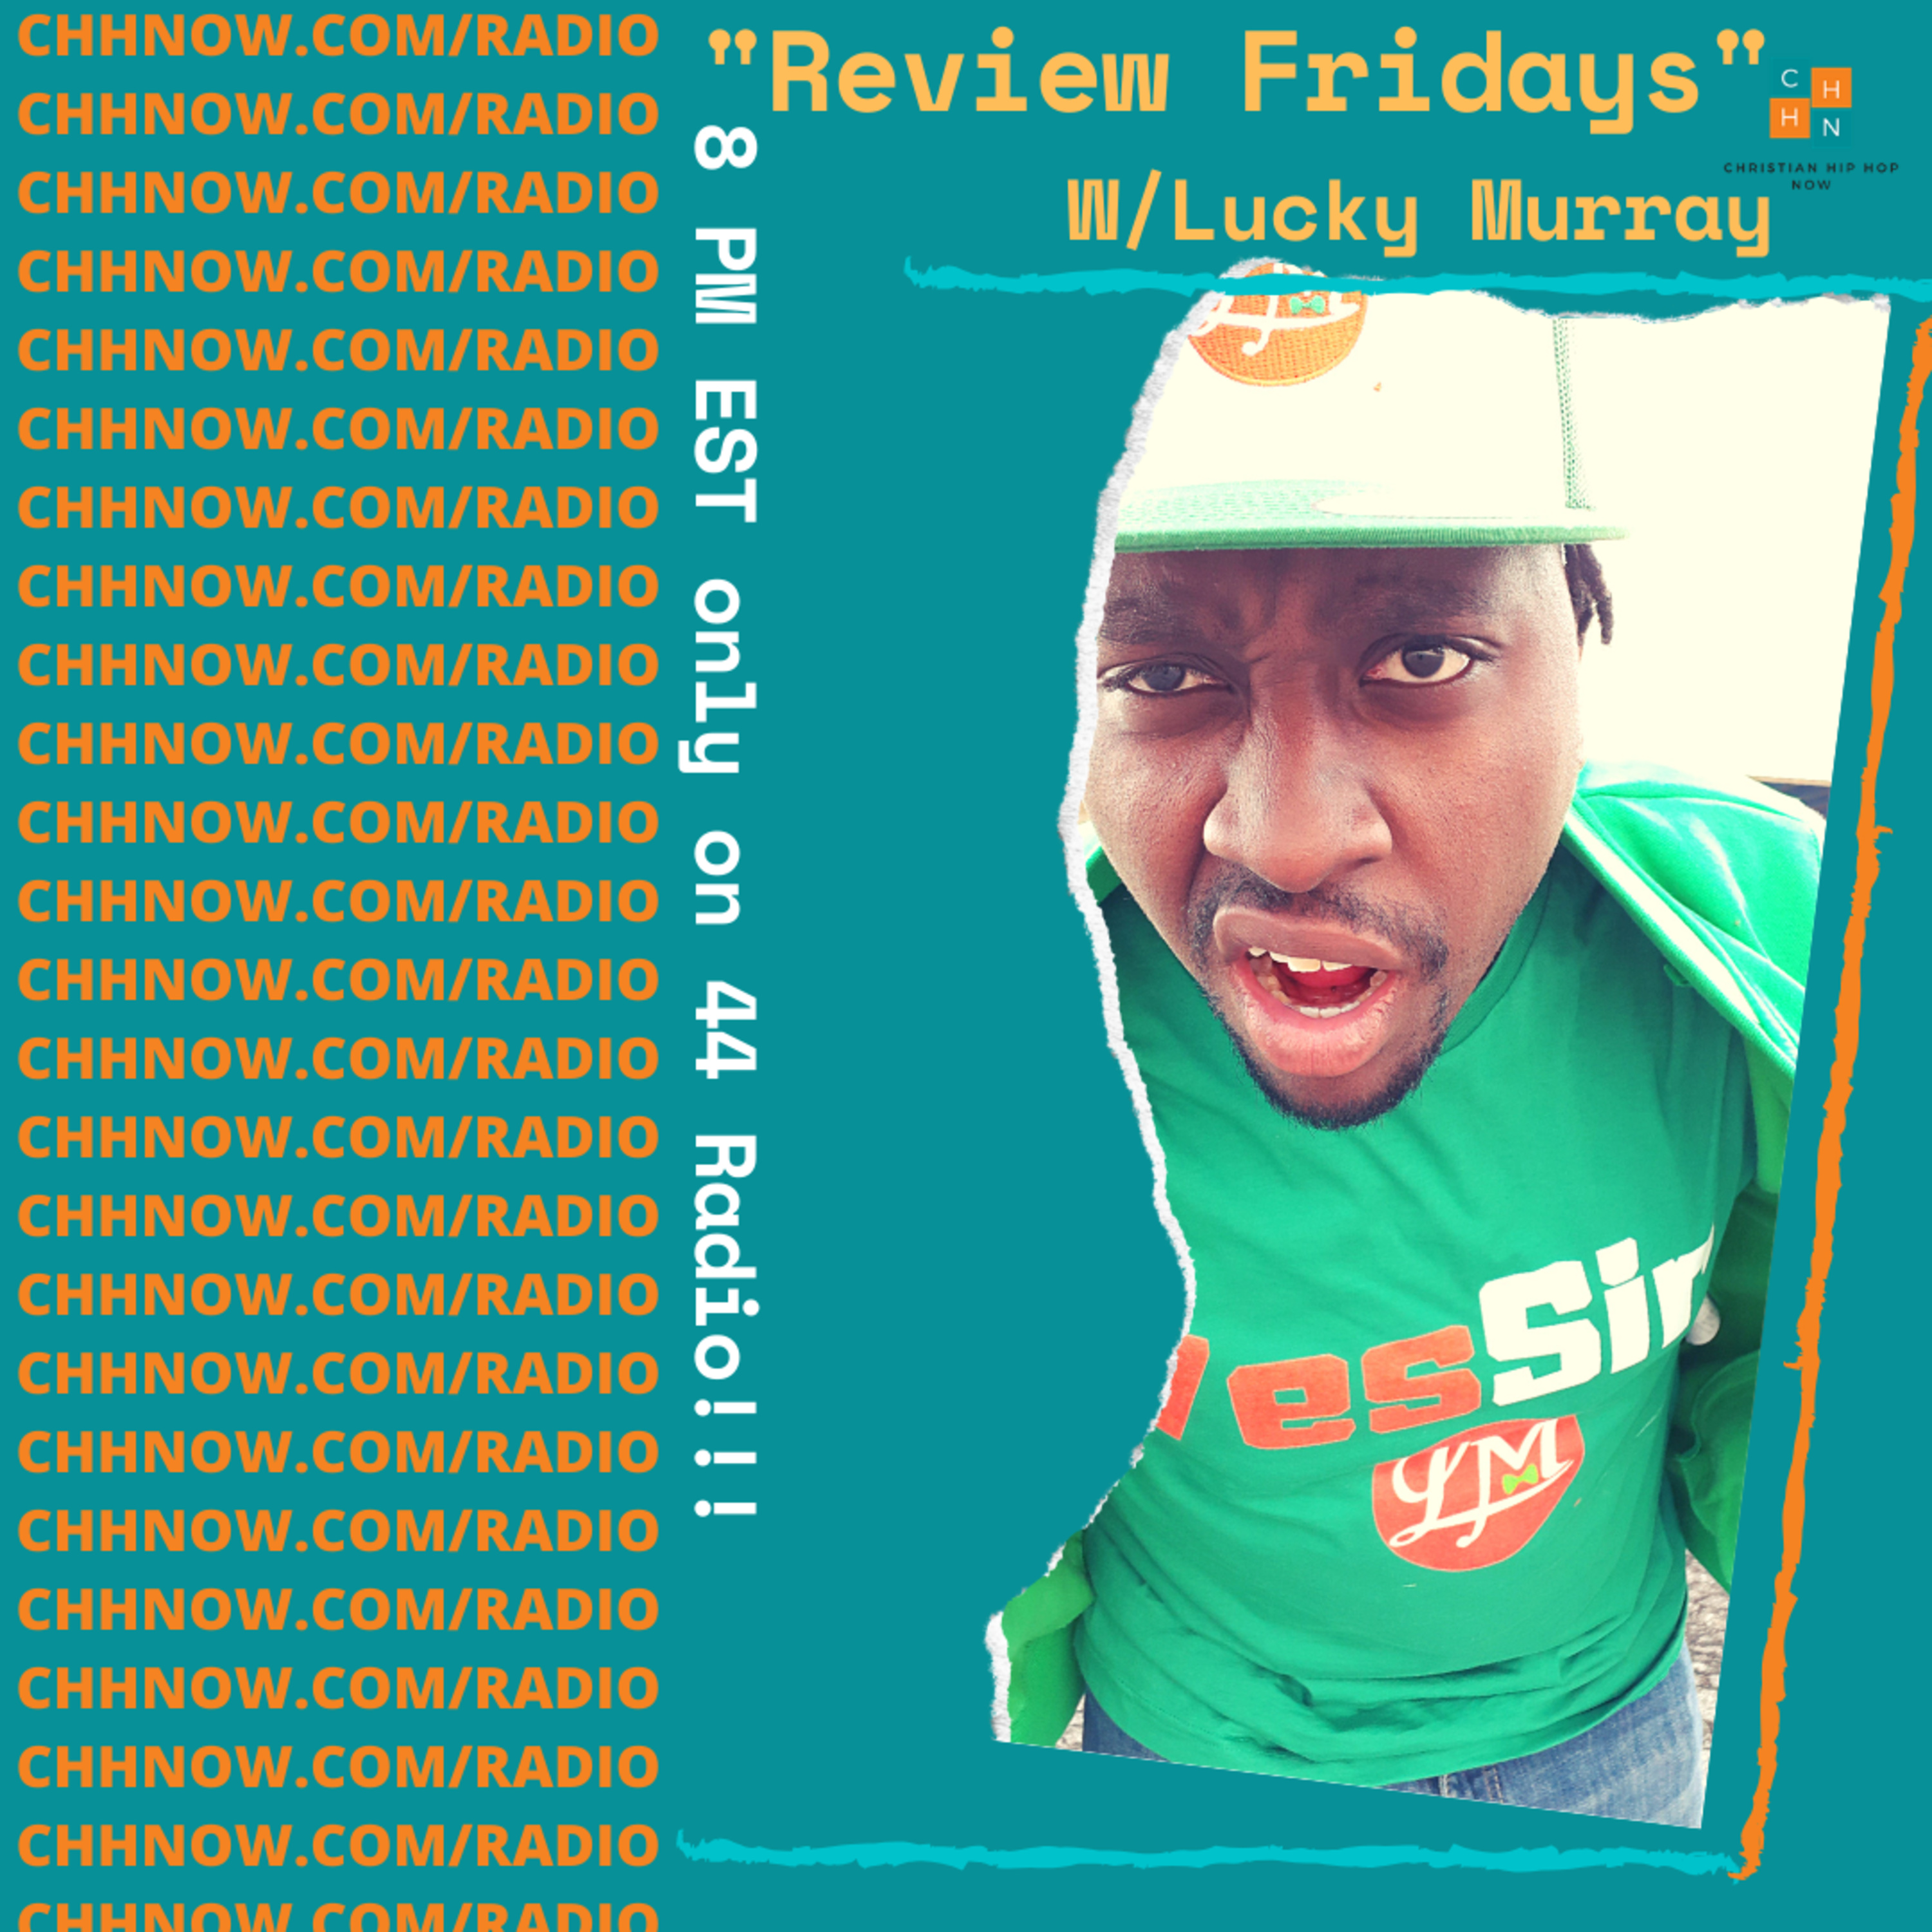 Review Friday's New Christian Hip Hop on 44 Radio 7-31-20